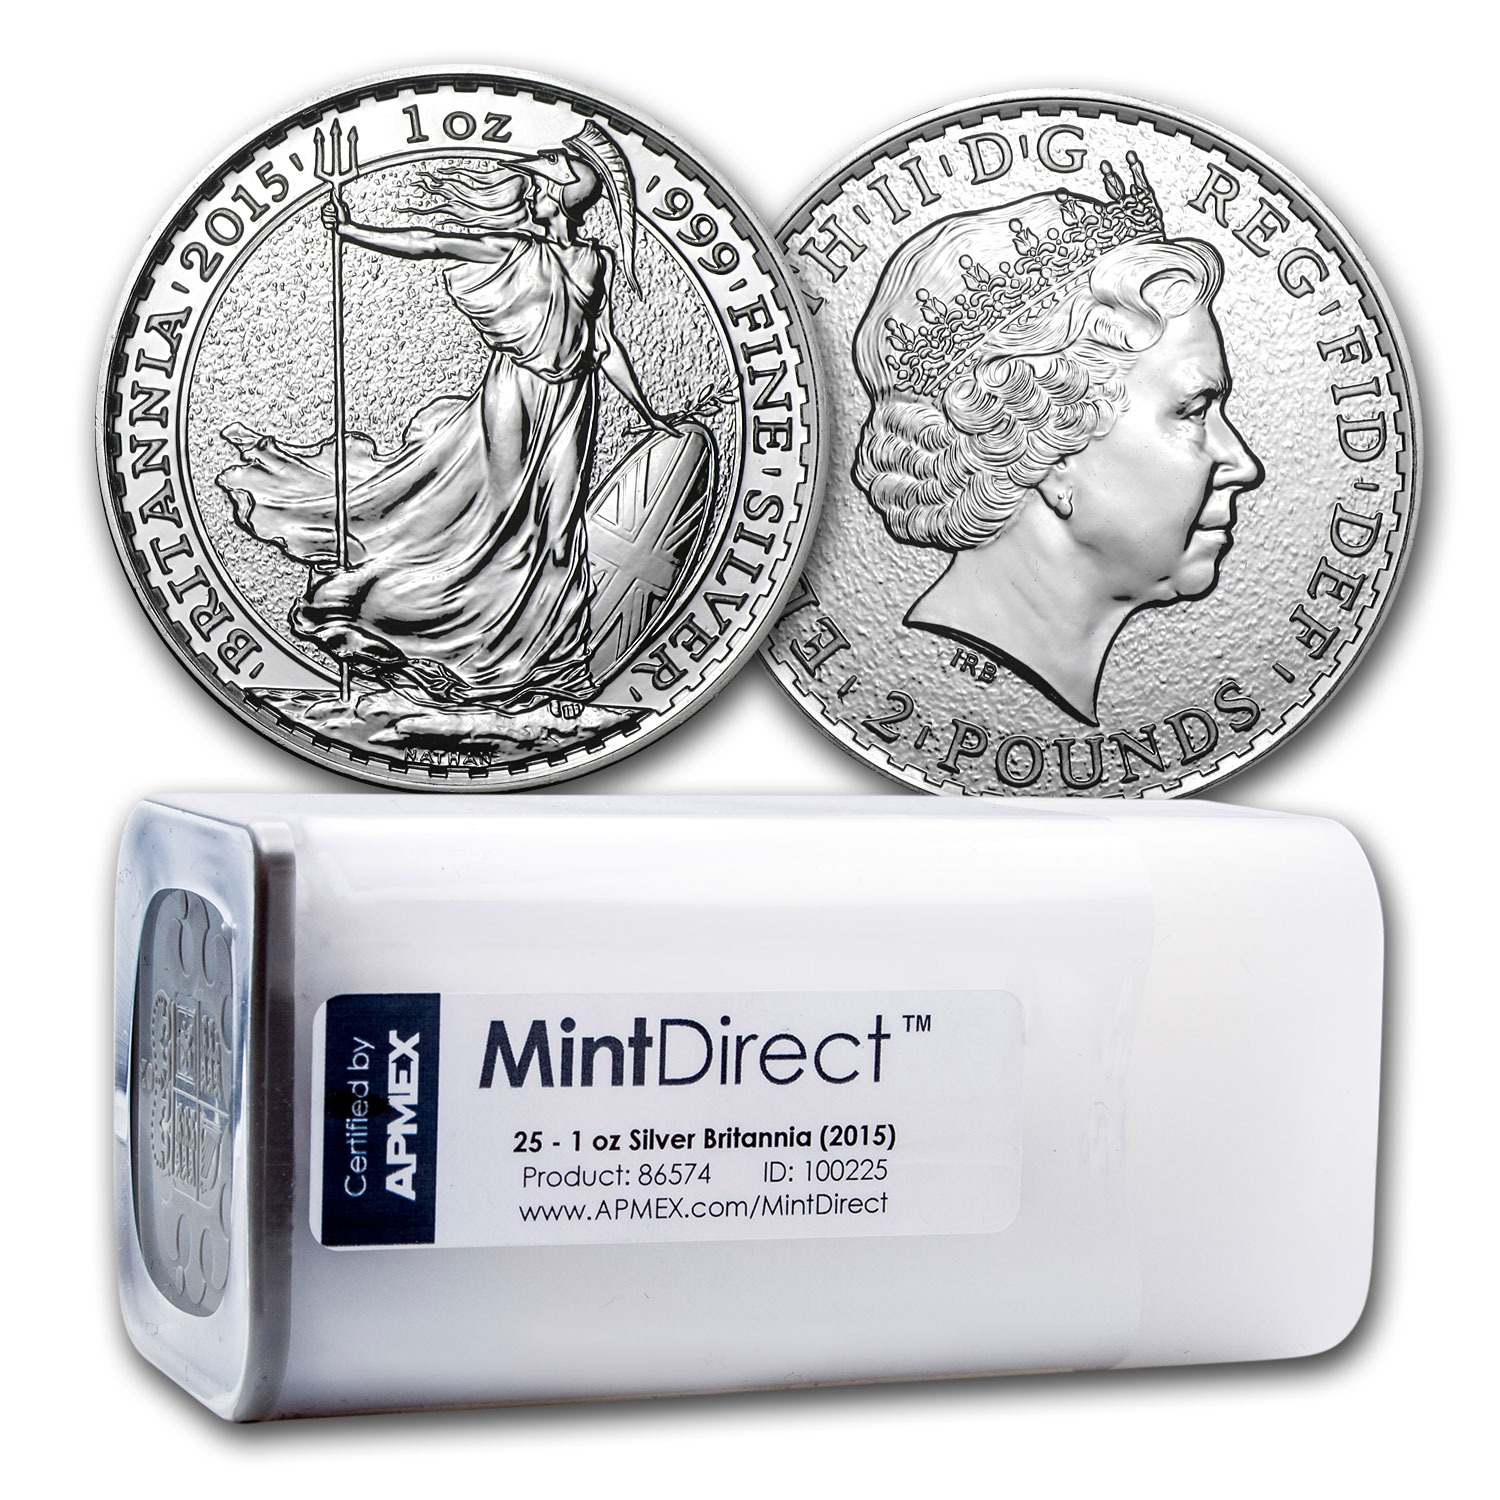 2015 1 oz Silver Britannia (25-Coin MintDirect® Tube)